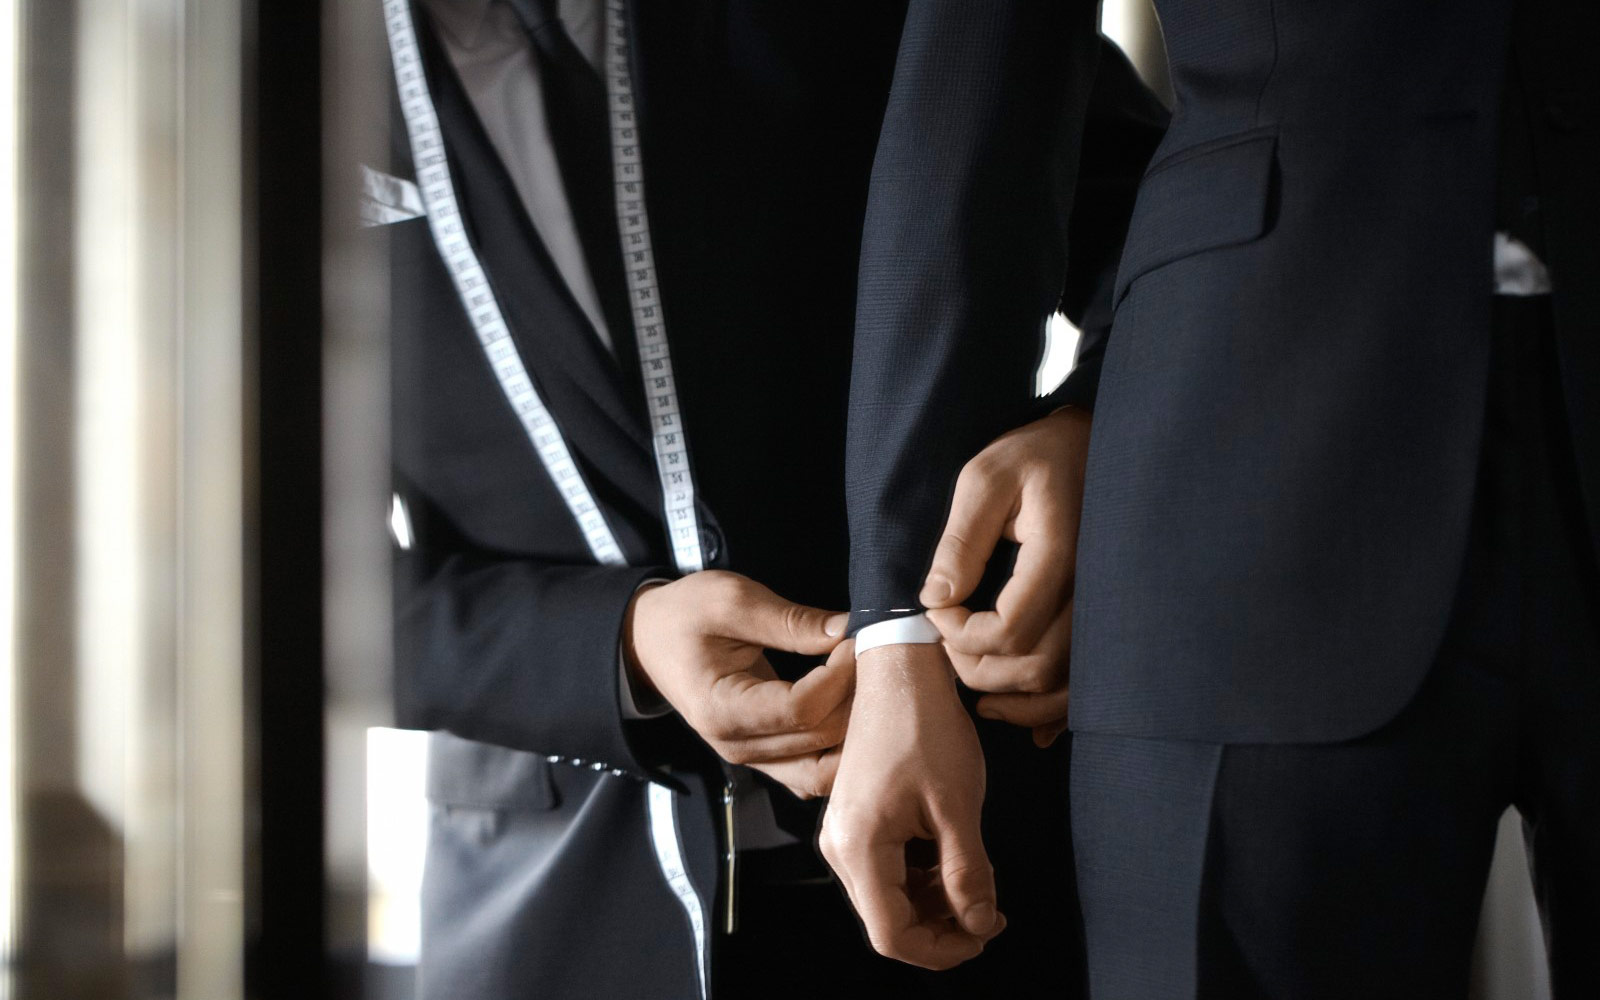 Finding the best tailor for alteration in town